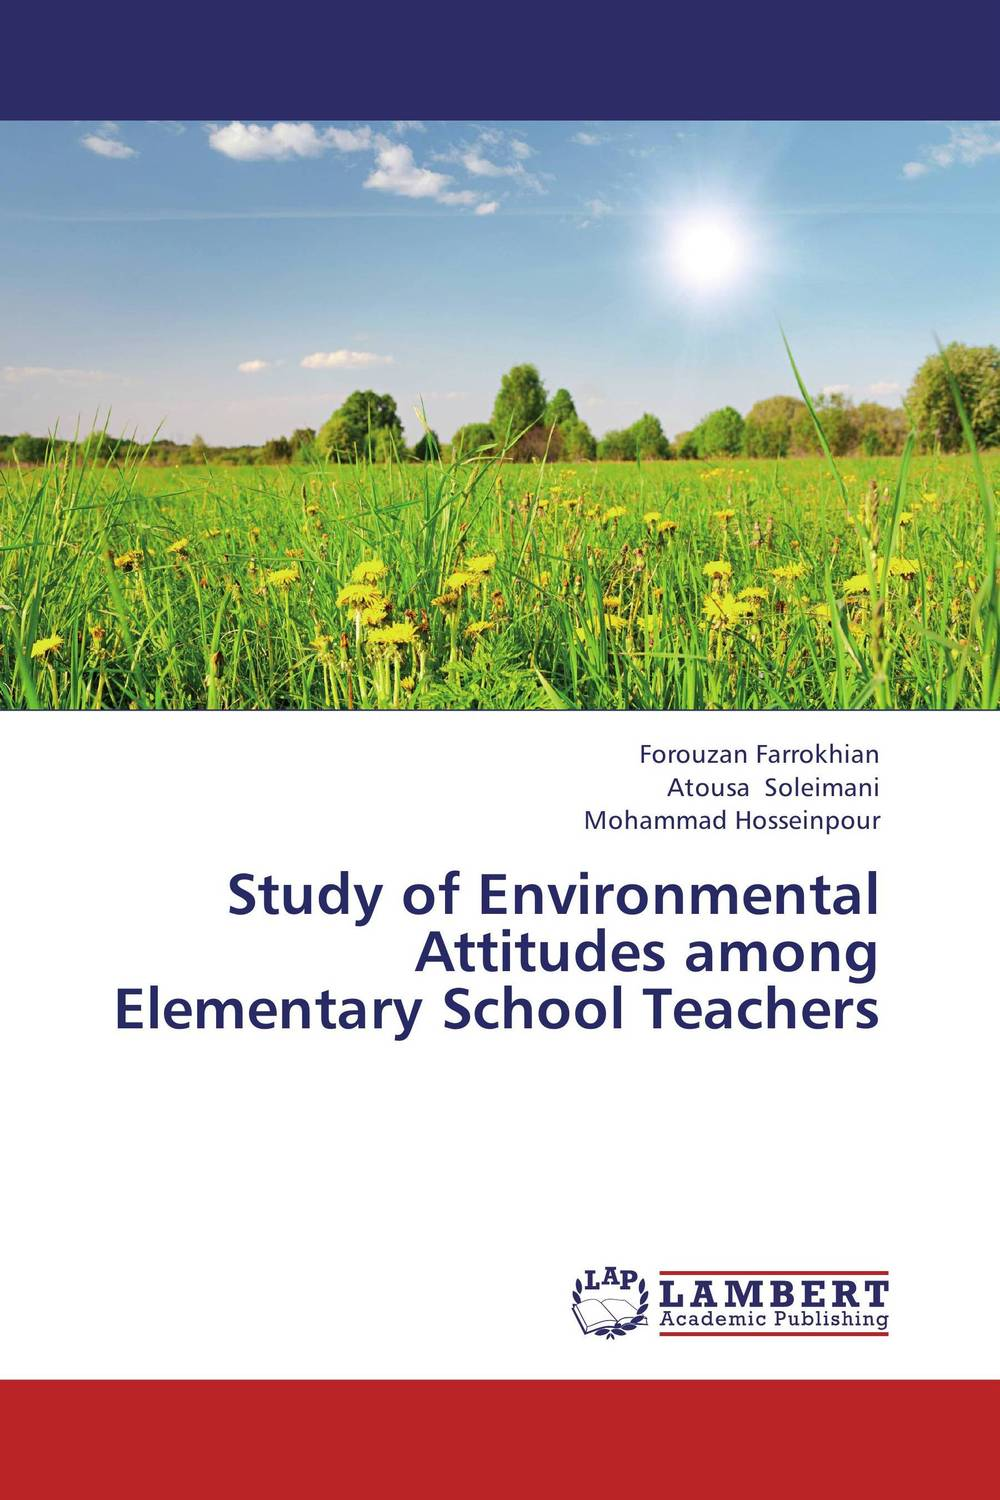 Study of Environmental Attitudes among Elementary School Teachers role of school leadership in promoting moral integrity among students